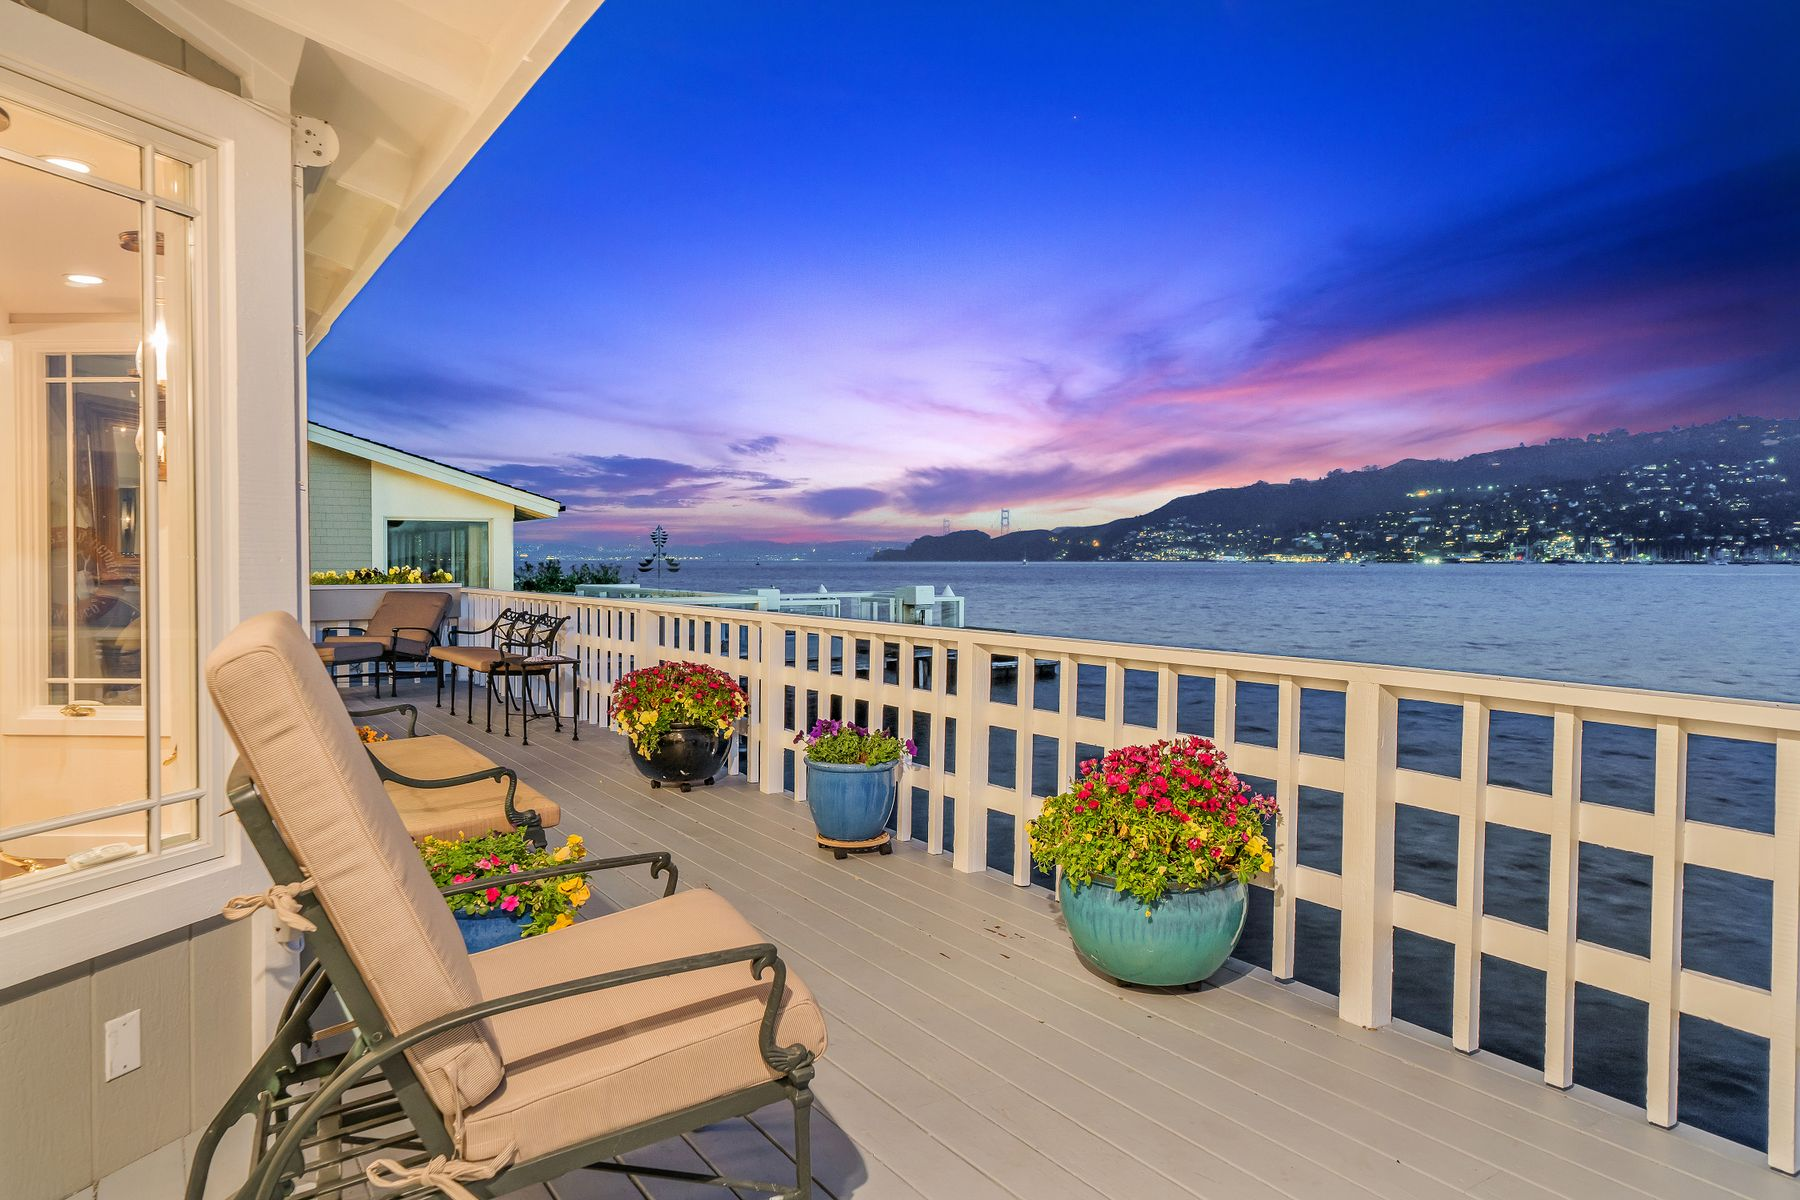 Single Family Homes for Sale at Remodeled Belvedere Bay-Front View Home 87 W Shore Rd Belvedere, California 94920 United States